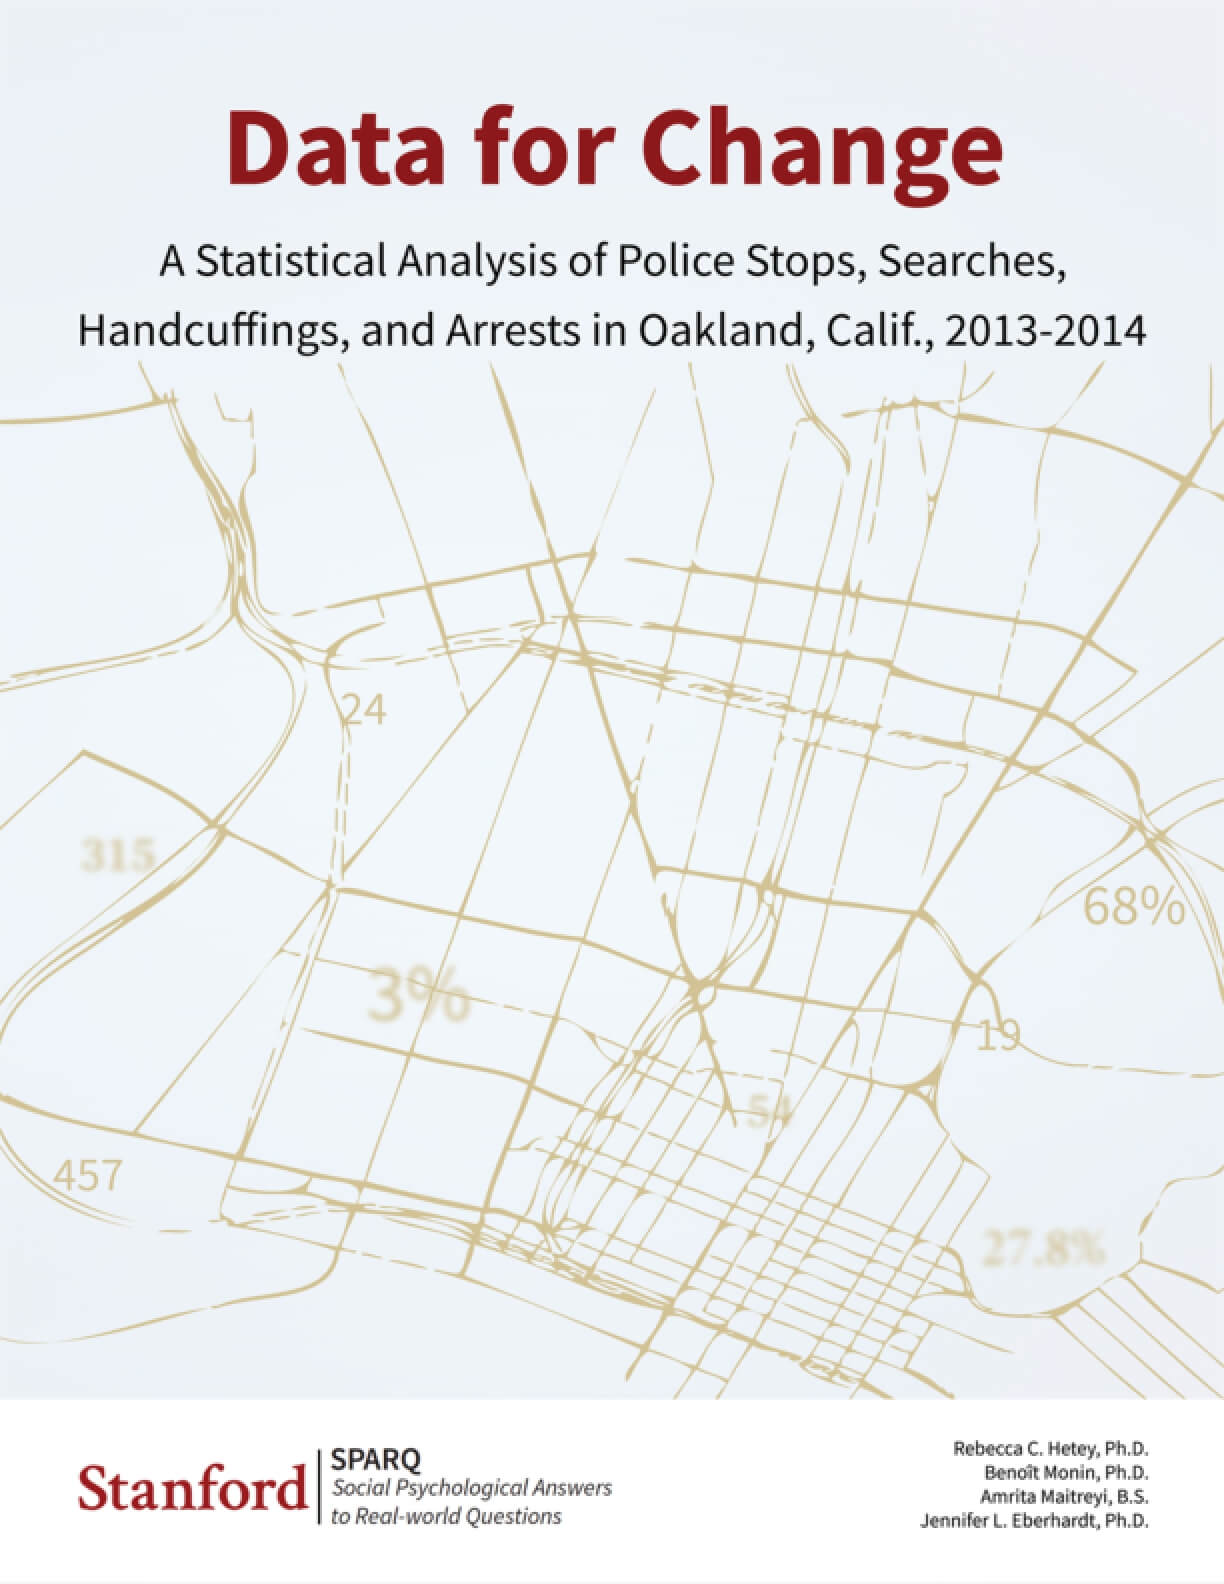 Data for Change: A Statistical Analysis of Police Stops, Searches, Handcuffings, and Arrests in Oakland, Calif., 2013-2014